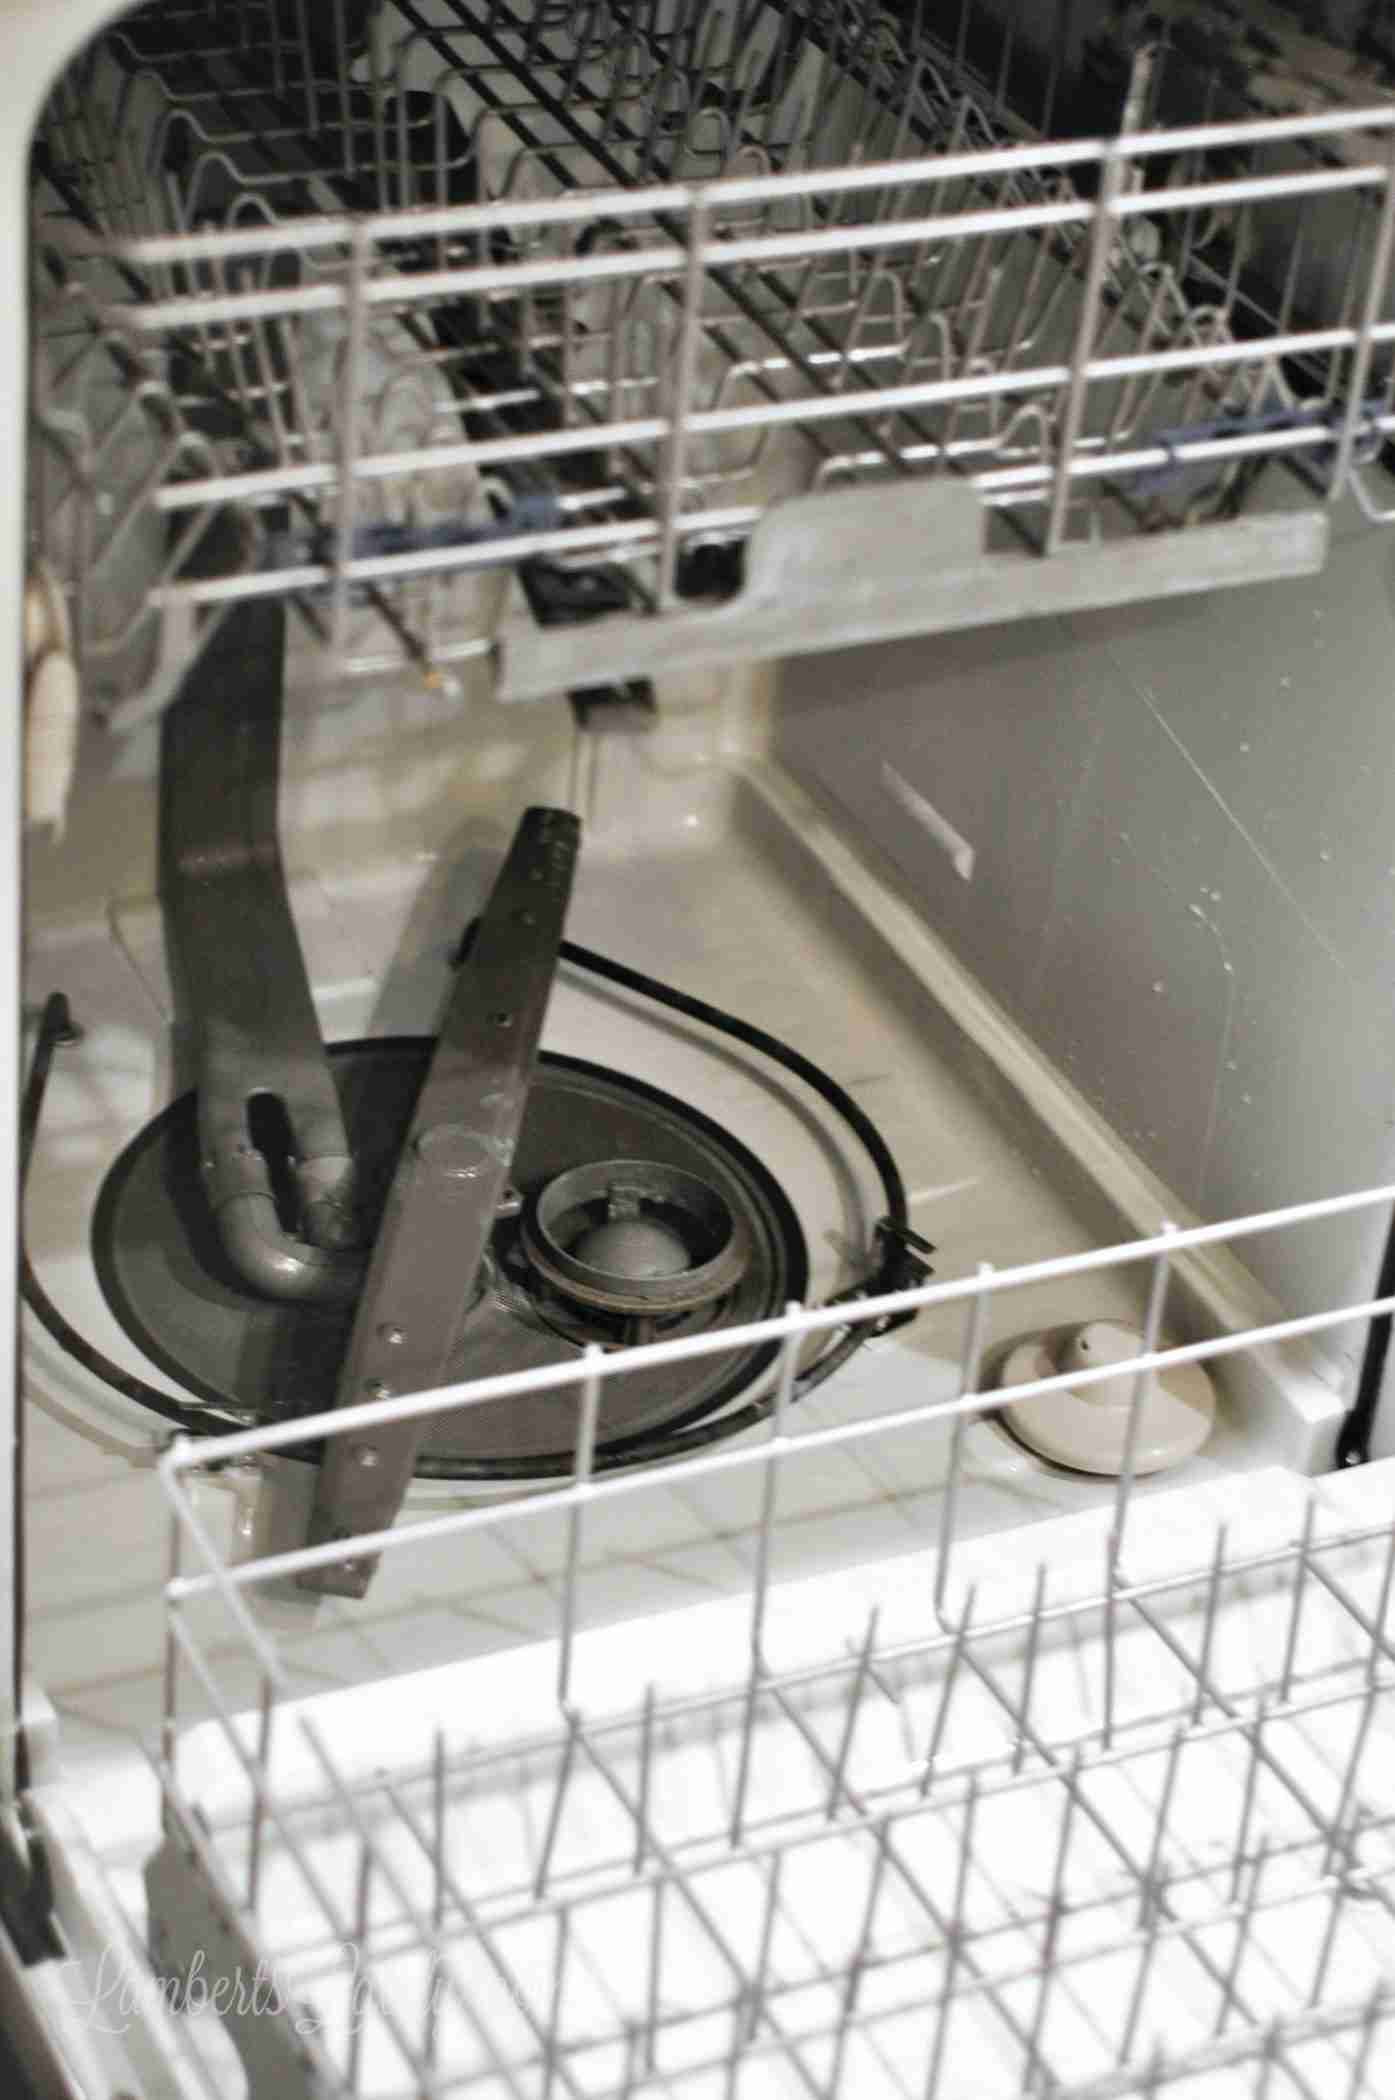 This post shows how to deep clean a dishwasher with vinegar and baking soda - see how to remove the filter and make your dishwasher so much more efficient when cleaning and drying!